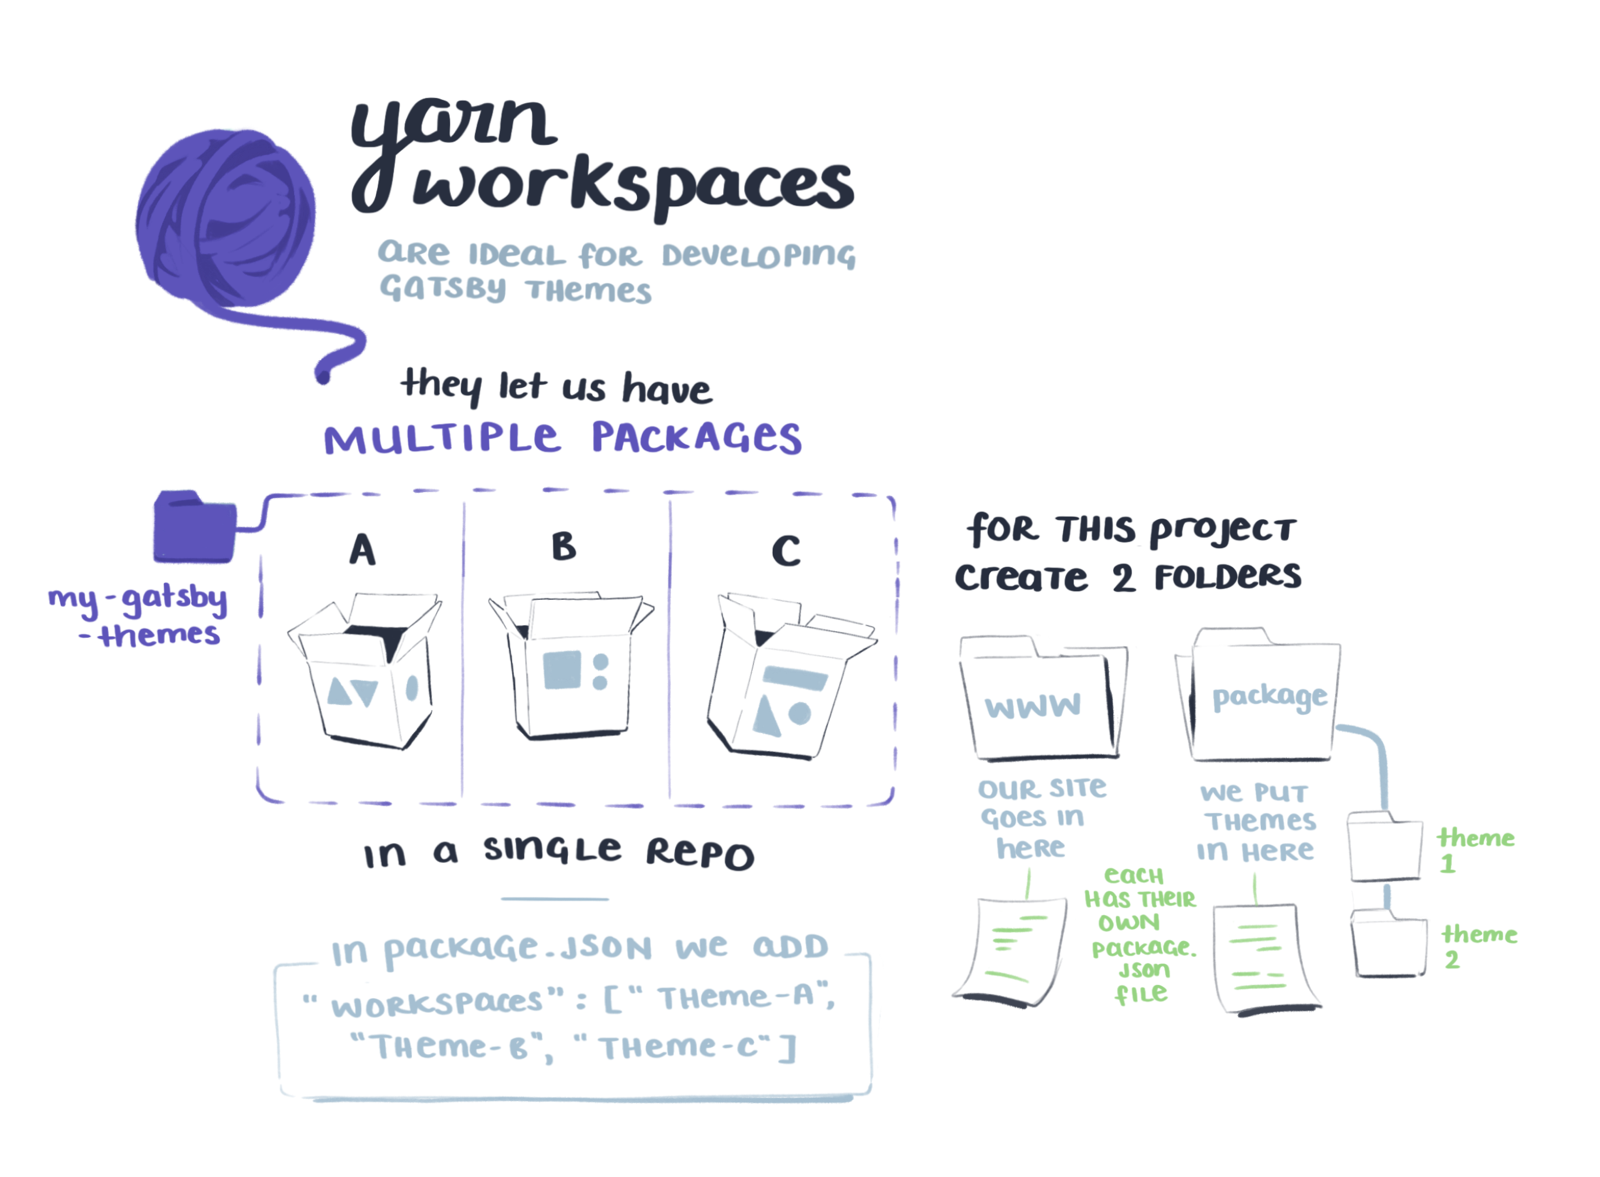 Yarn workspaces are ideal for developing gatsby themes. It lets us have multiple packages in a single repo